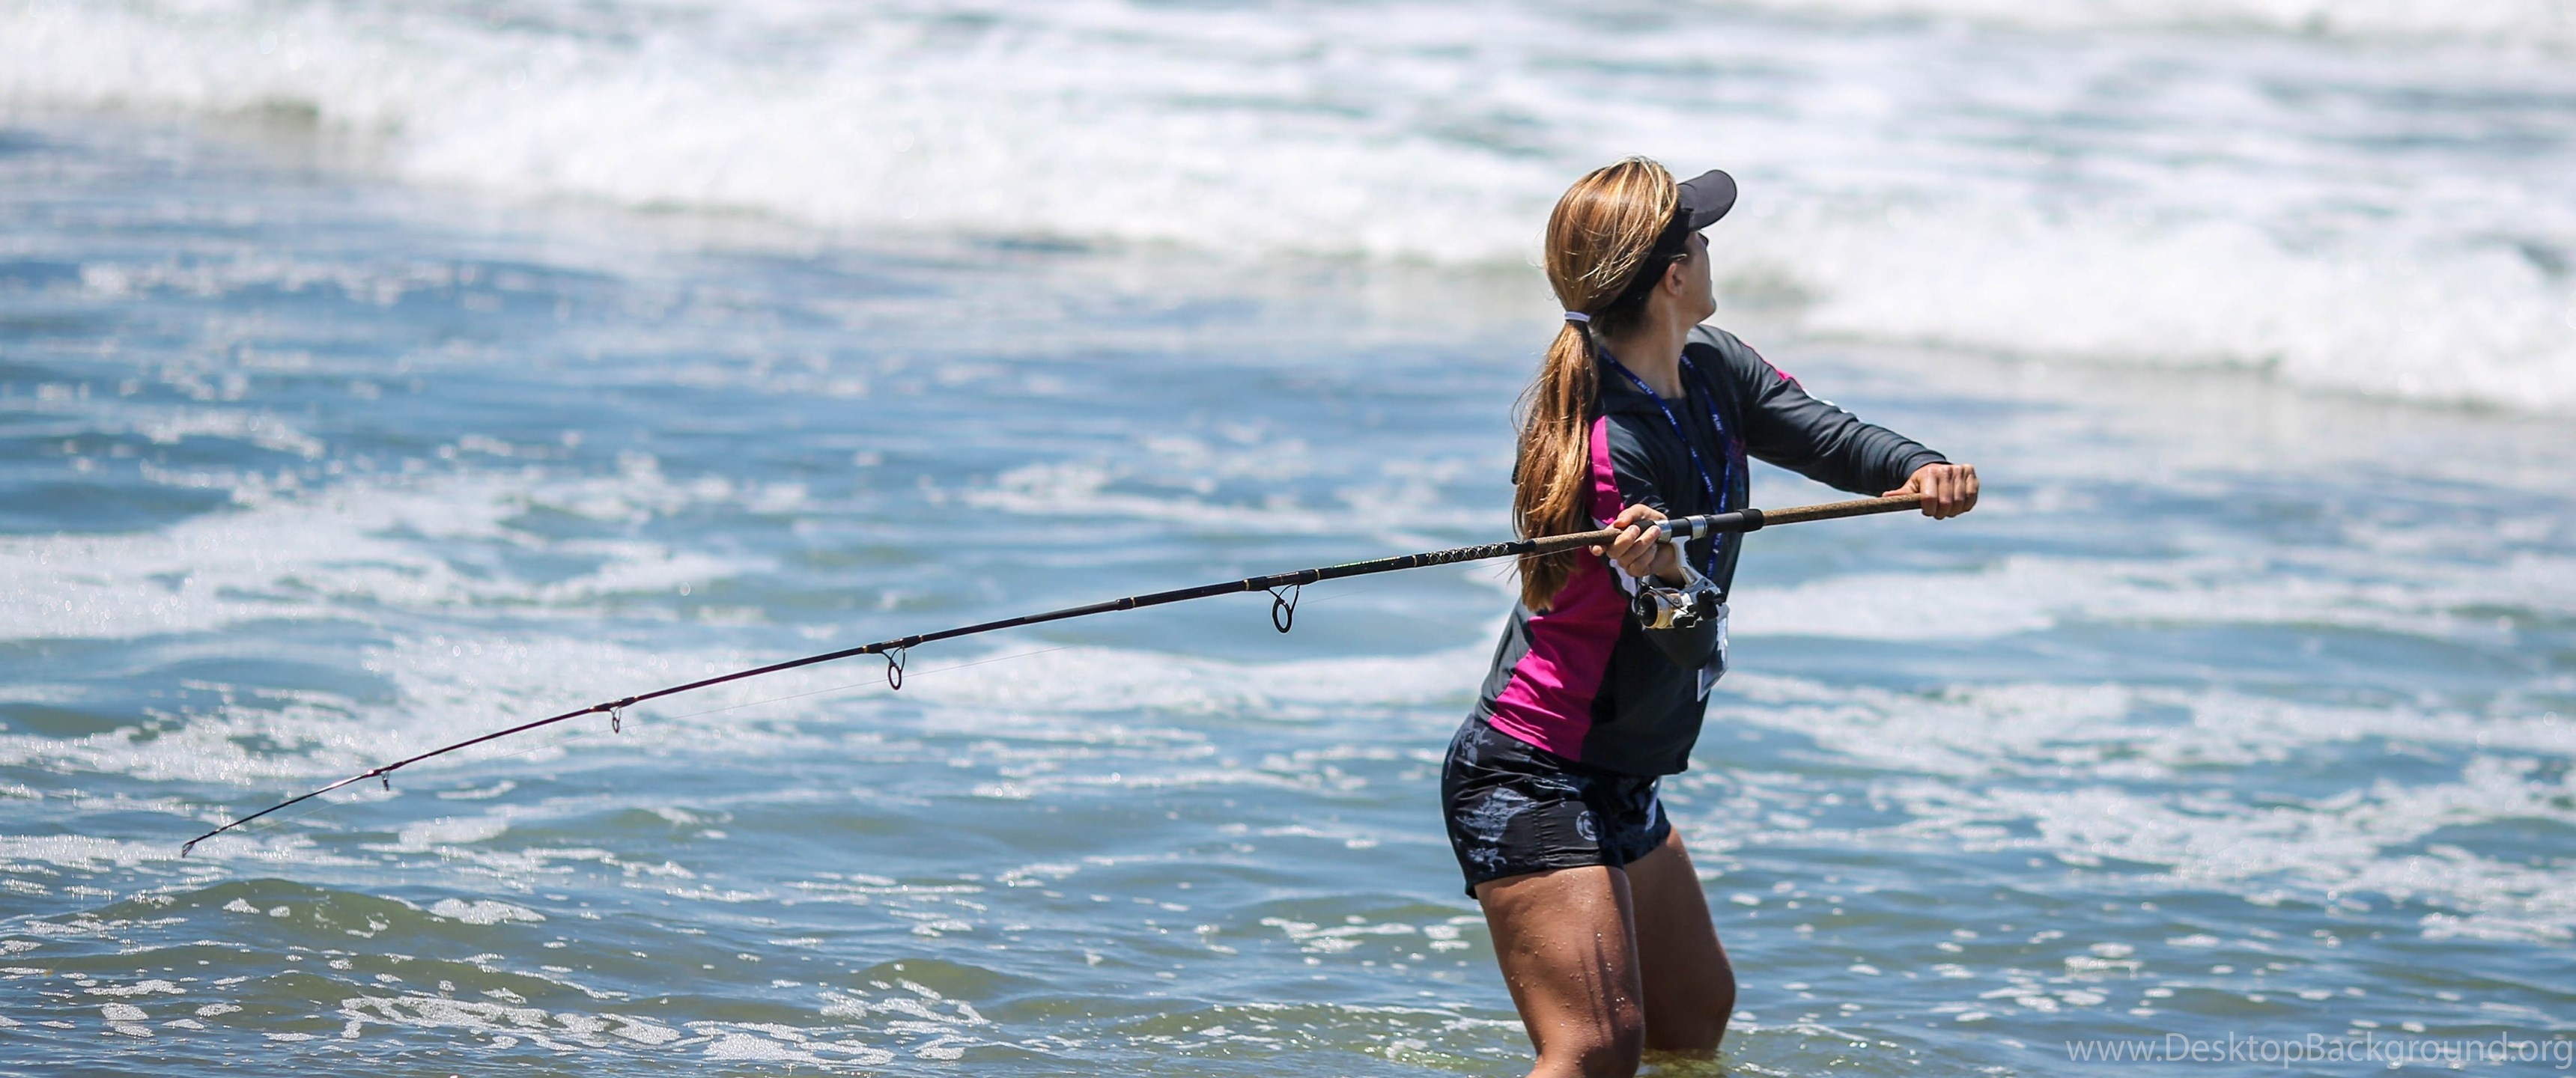 Funny Videos, Funny Clips Funny Pictures Break Funny pictures of women fishing